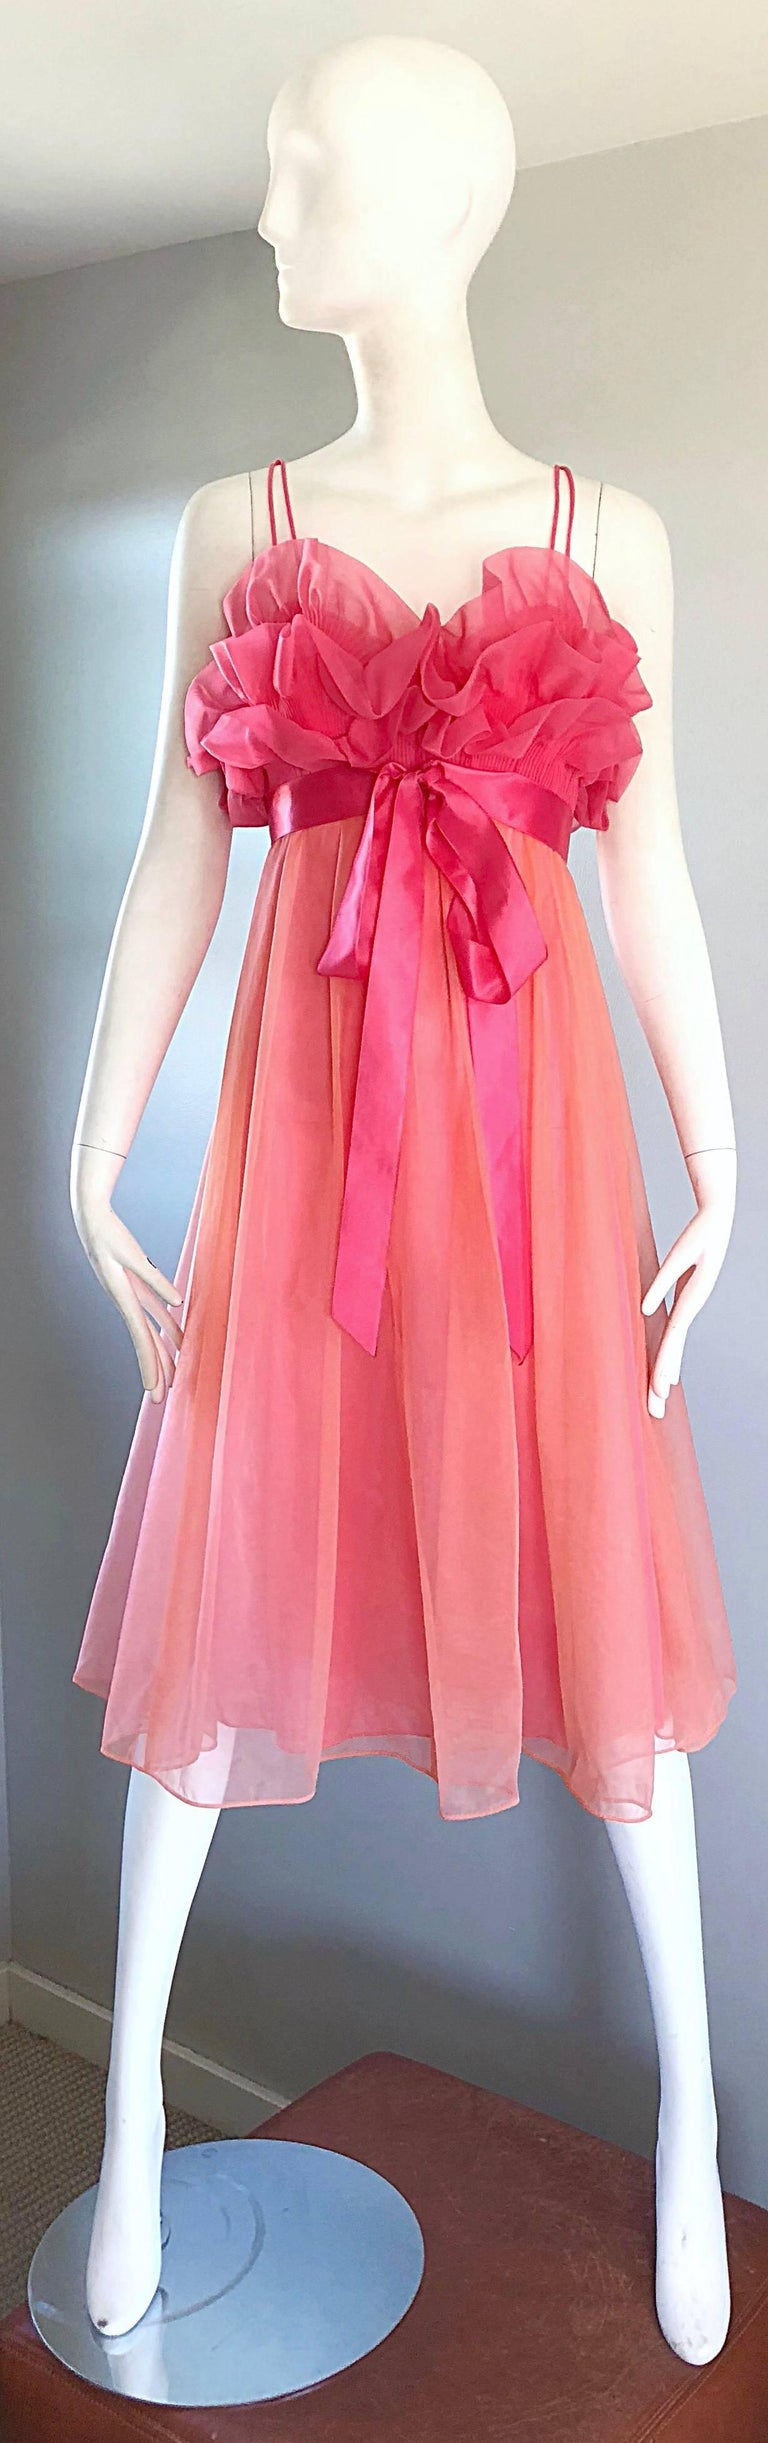 1960s Vanity Fair Negligee Peignoir Hot Pink Ruffled Nightgown Dress ...